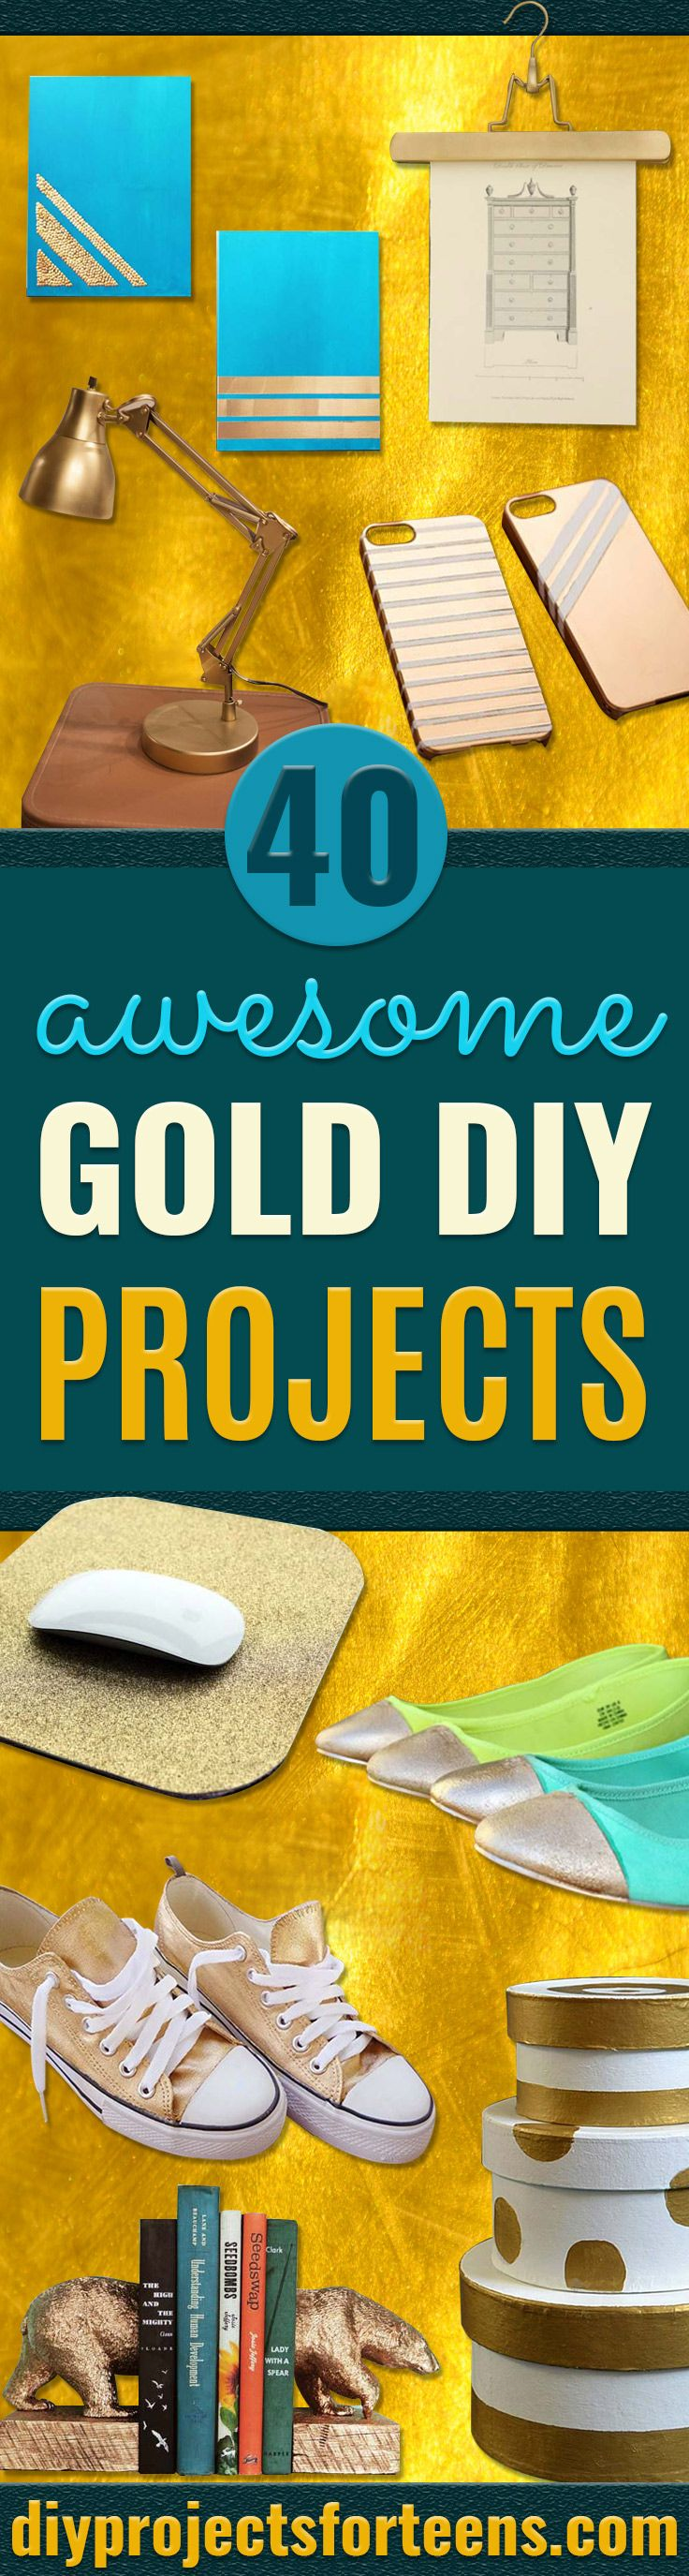 162 best diy projects for teens images on pinterest teen crafts 40 brilliantly gold diy projects